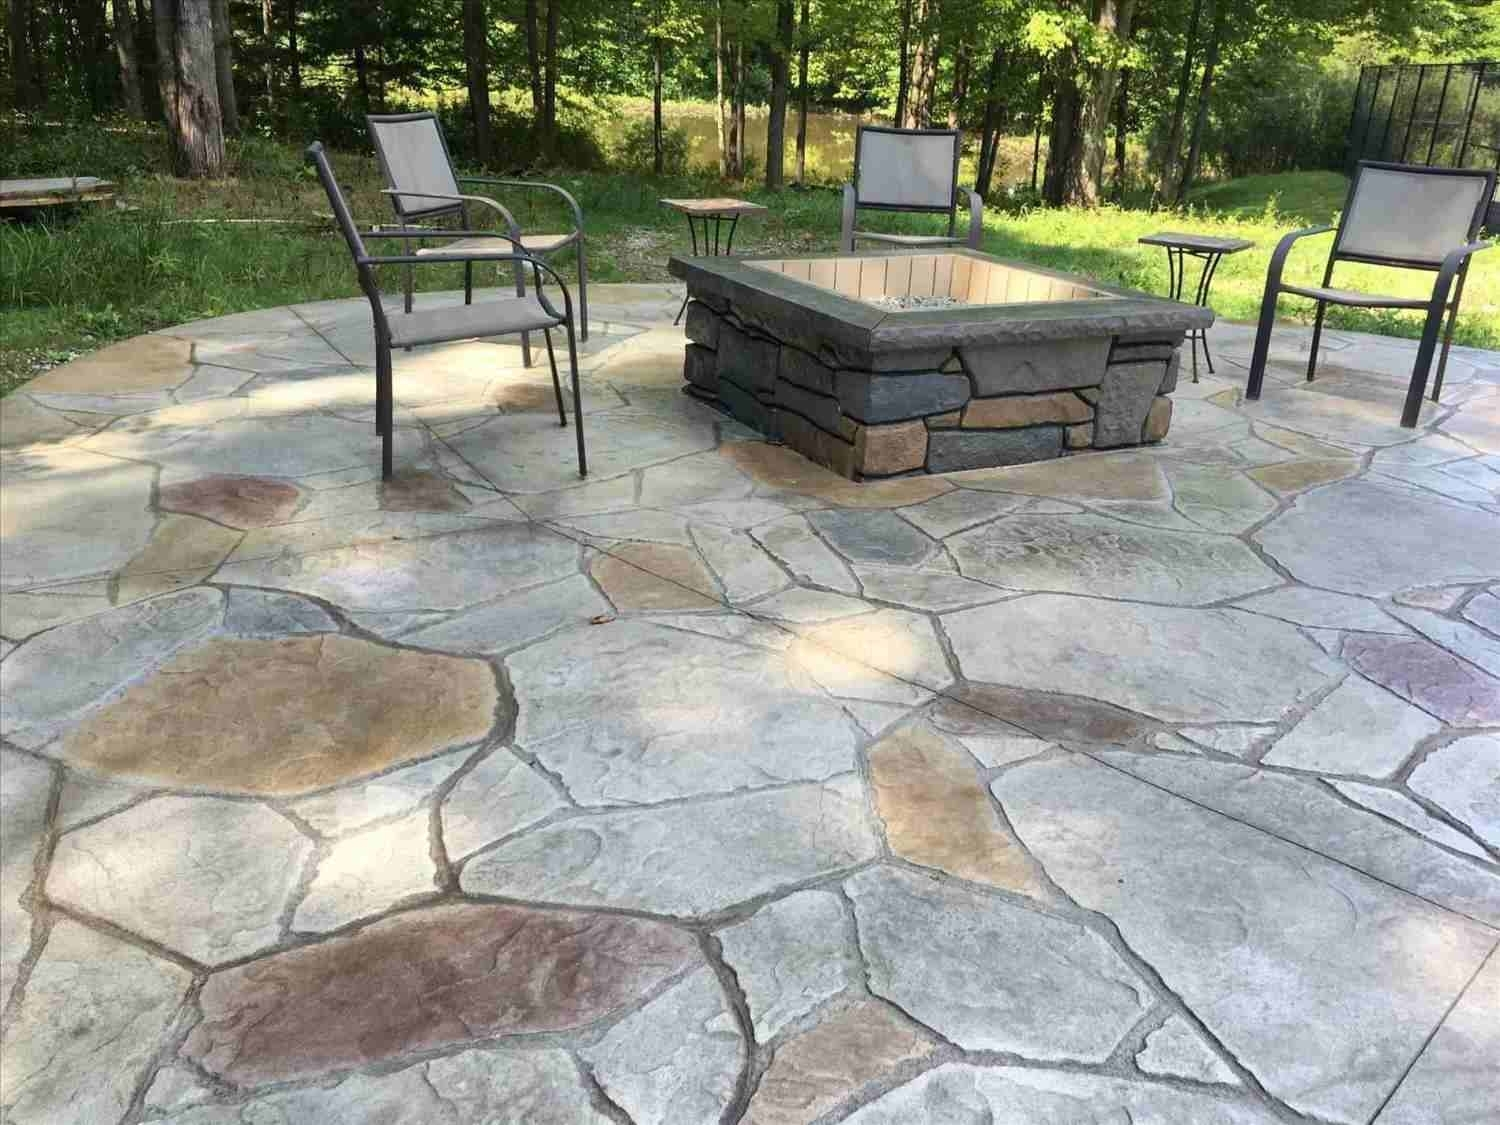 Simple Backyard Stamped Concrete Patio Ideas Design Idea regarding Simple Backyard Patio Ideas